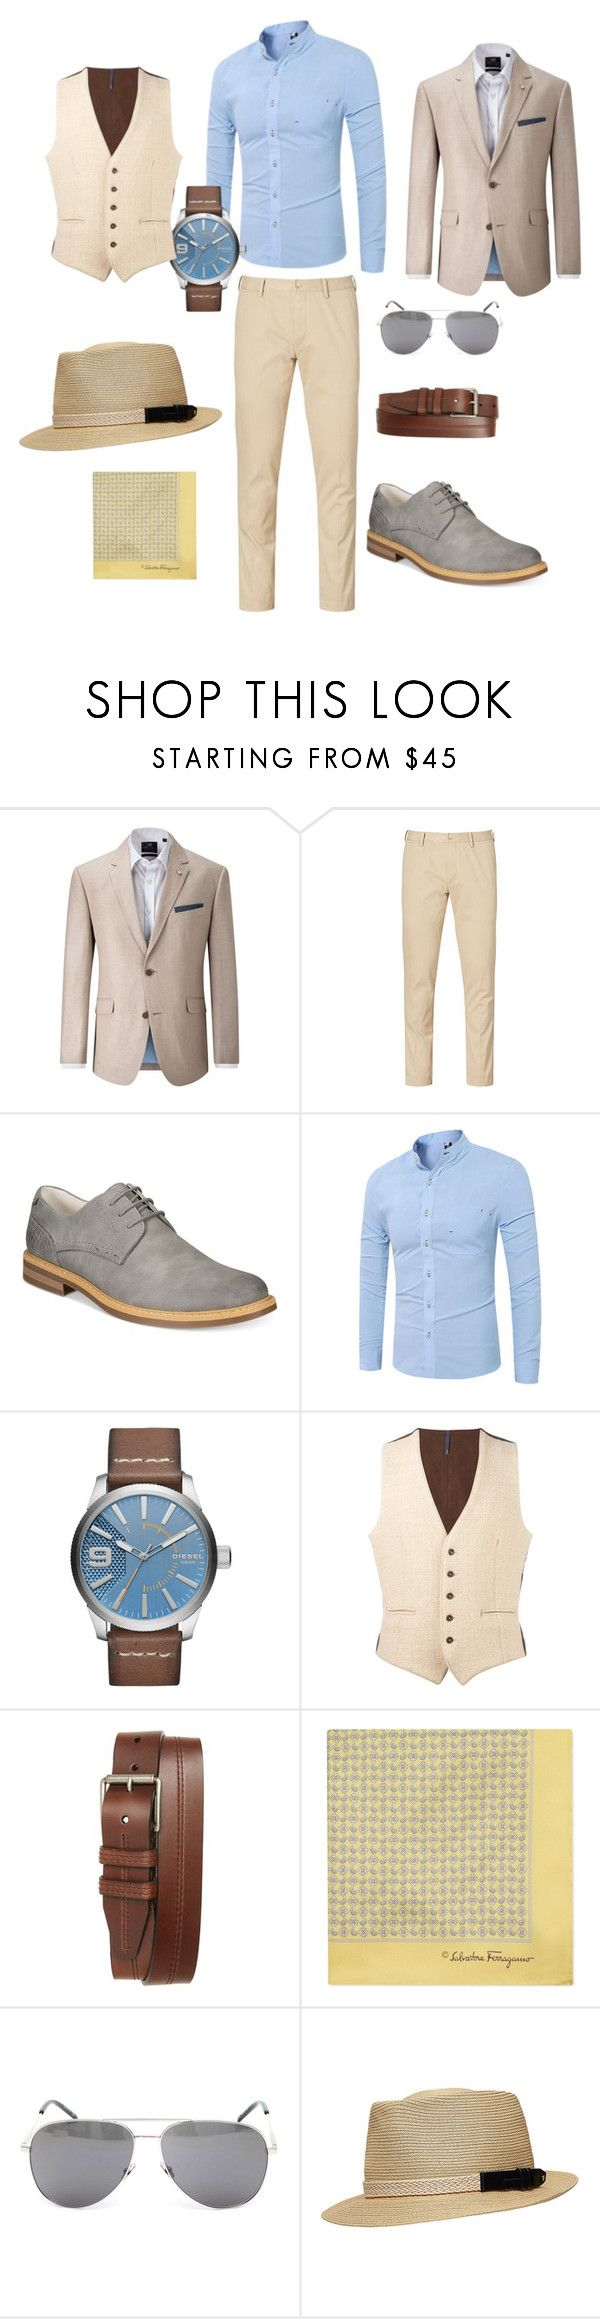 """наивный романтизм"" by lidyaschka on Polyvore featuring Skopes, Ralph Lauren, Kenneth Cole Reaction, Diesel, Montedoro, 1901, Salvatore Ferragamo, Yves Saint Laurent, men's fashion и menswear"